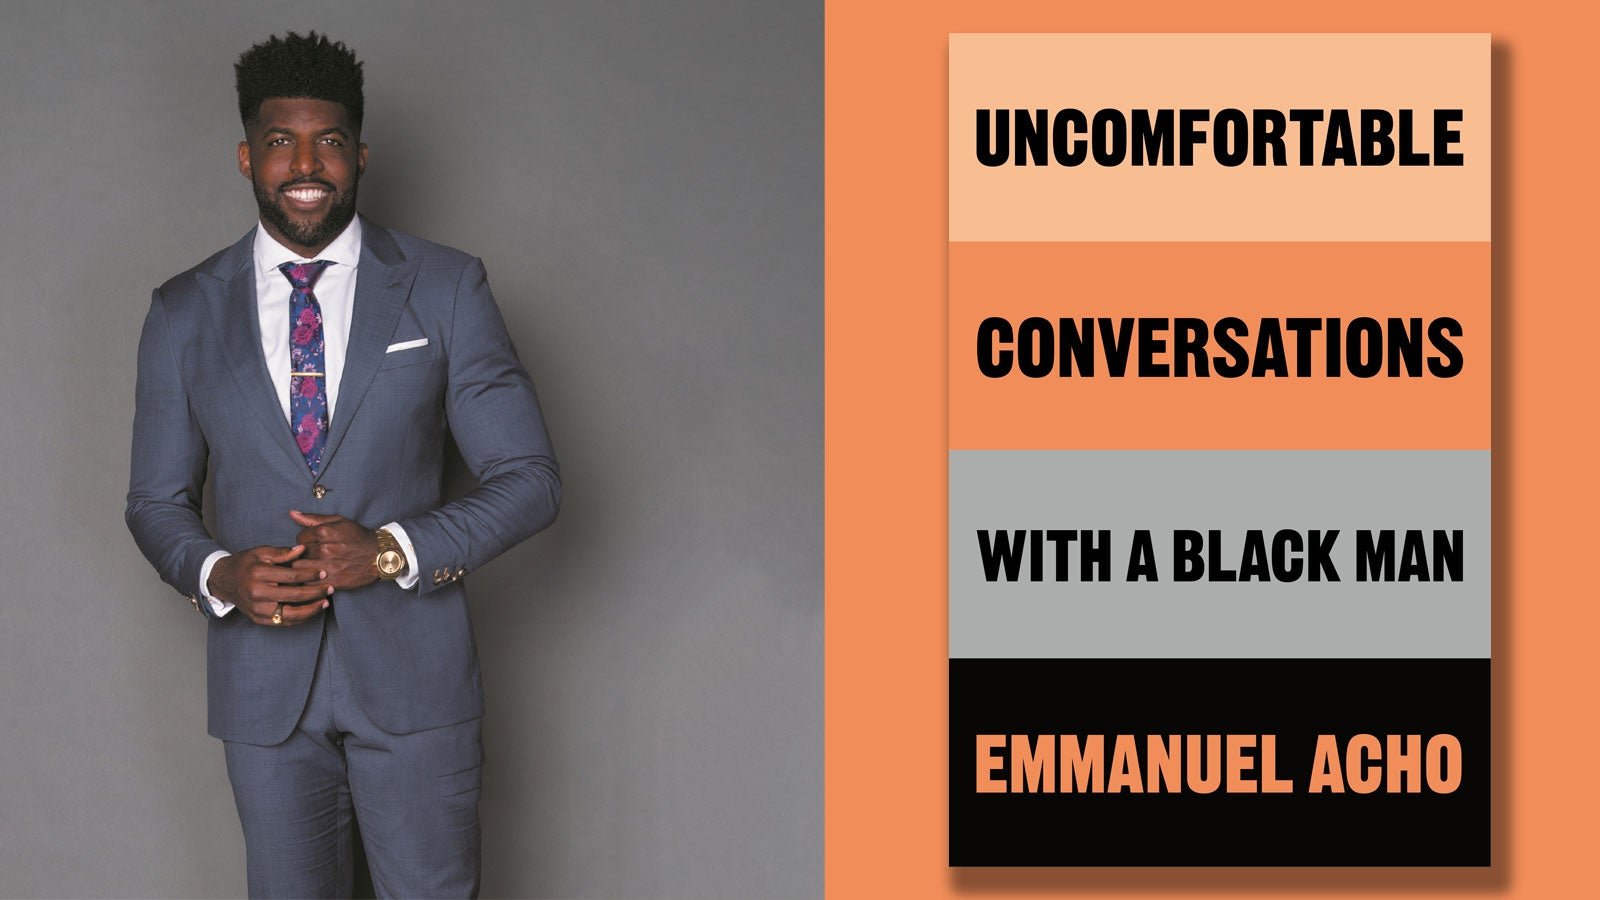 Emmanuel Acho and the Uncomfortable Conversations with a Black Man book cover